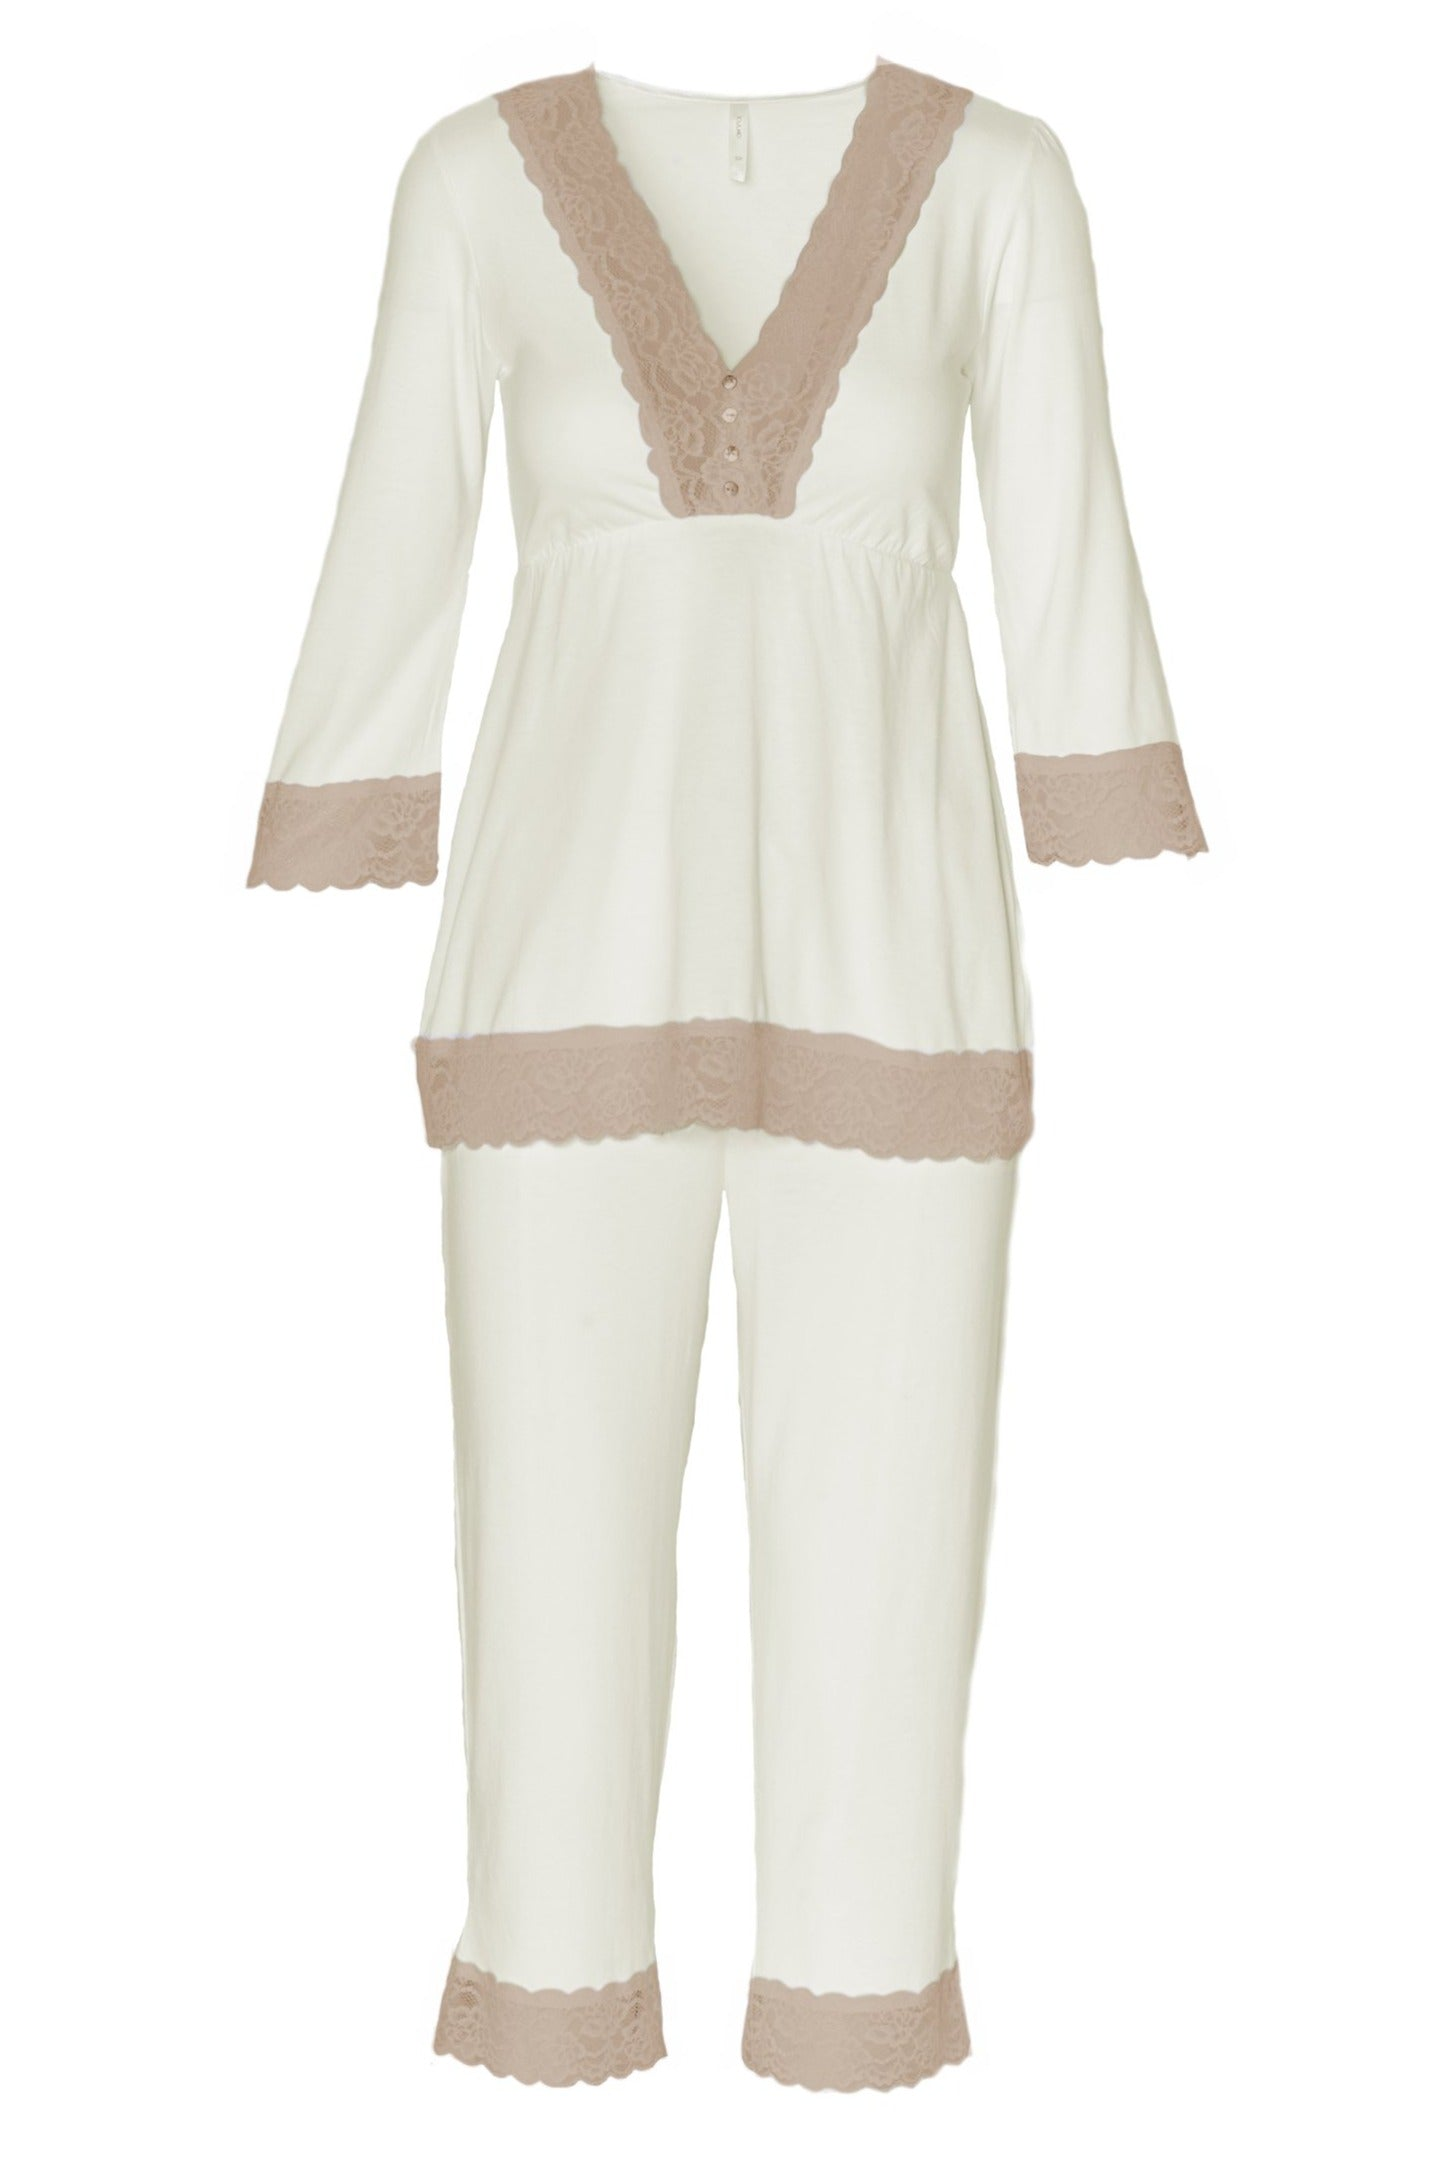 Sophie Basic 3/4 Sleeve Cropped Pant PJ Set - Sales Rack